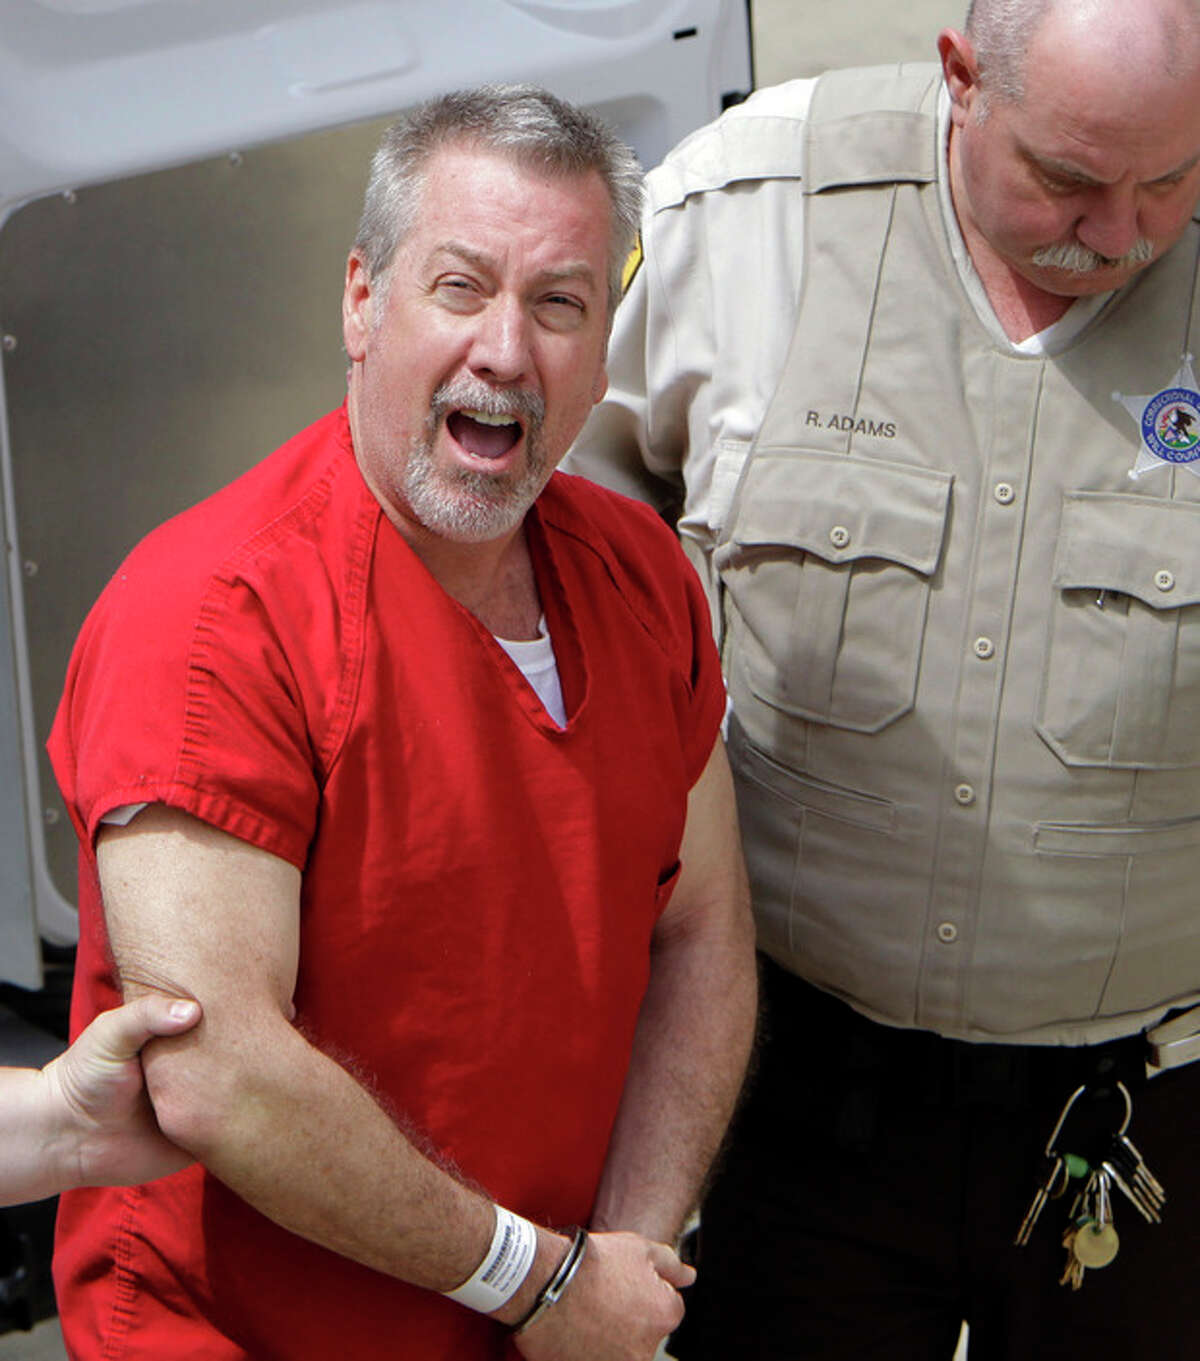 FILE - In this May 8, 2009 file photo, former Bolingbrook, Ill., police sergeant Drew Peterson yells to reporters as he arrives at the Will County Courthouse in Joliet, Ill., for his arraignment on charges of first-degree murder in the 2004 death of his former wife Kathleen Savio, who was found in an empty bathtub at home. Jury selection in his trial begins Monday, July 23, 2012. (AP Photo/M. Spencer Green, File)